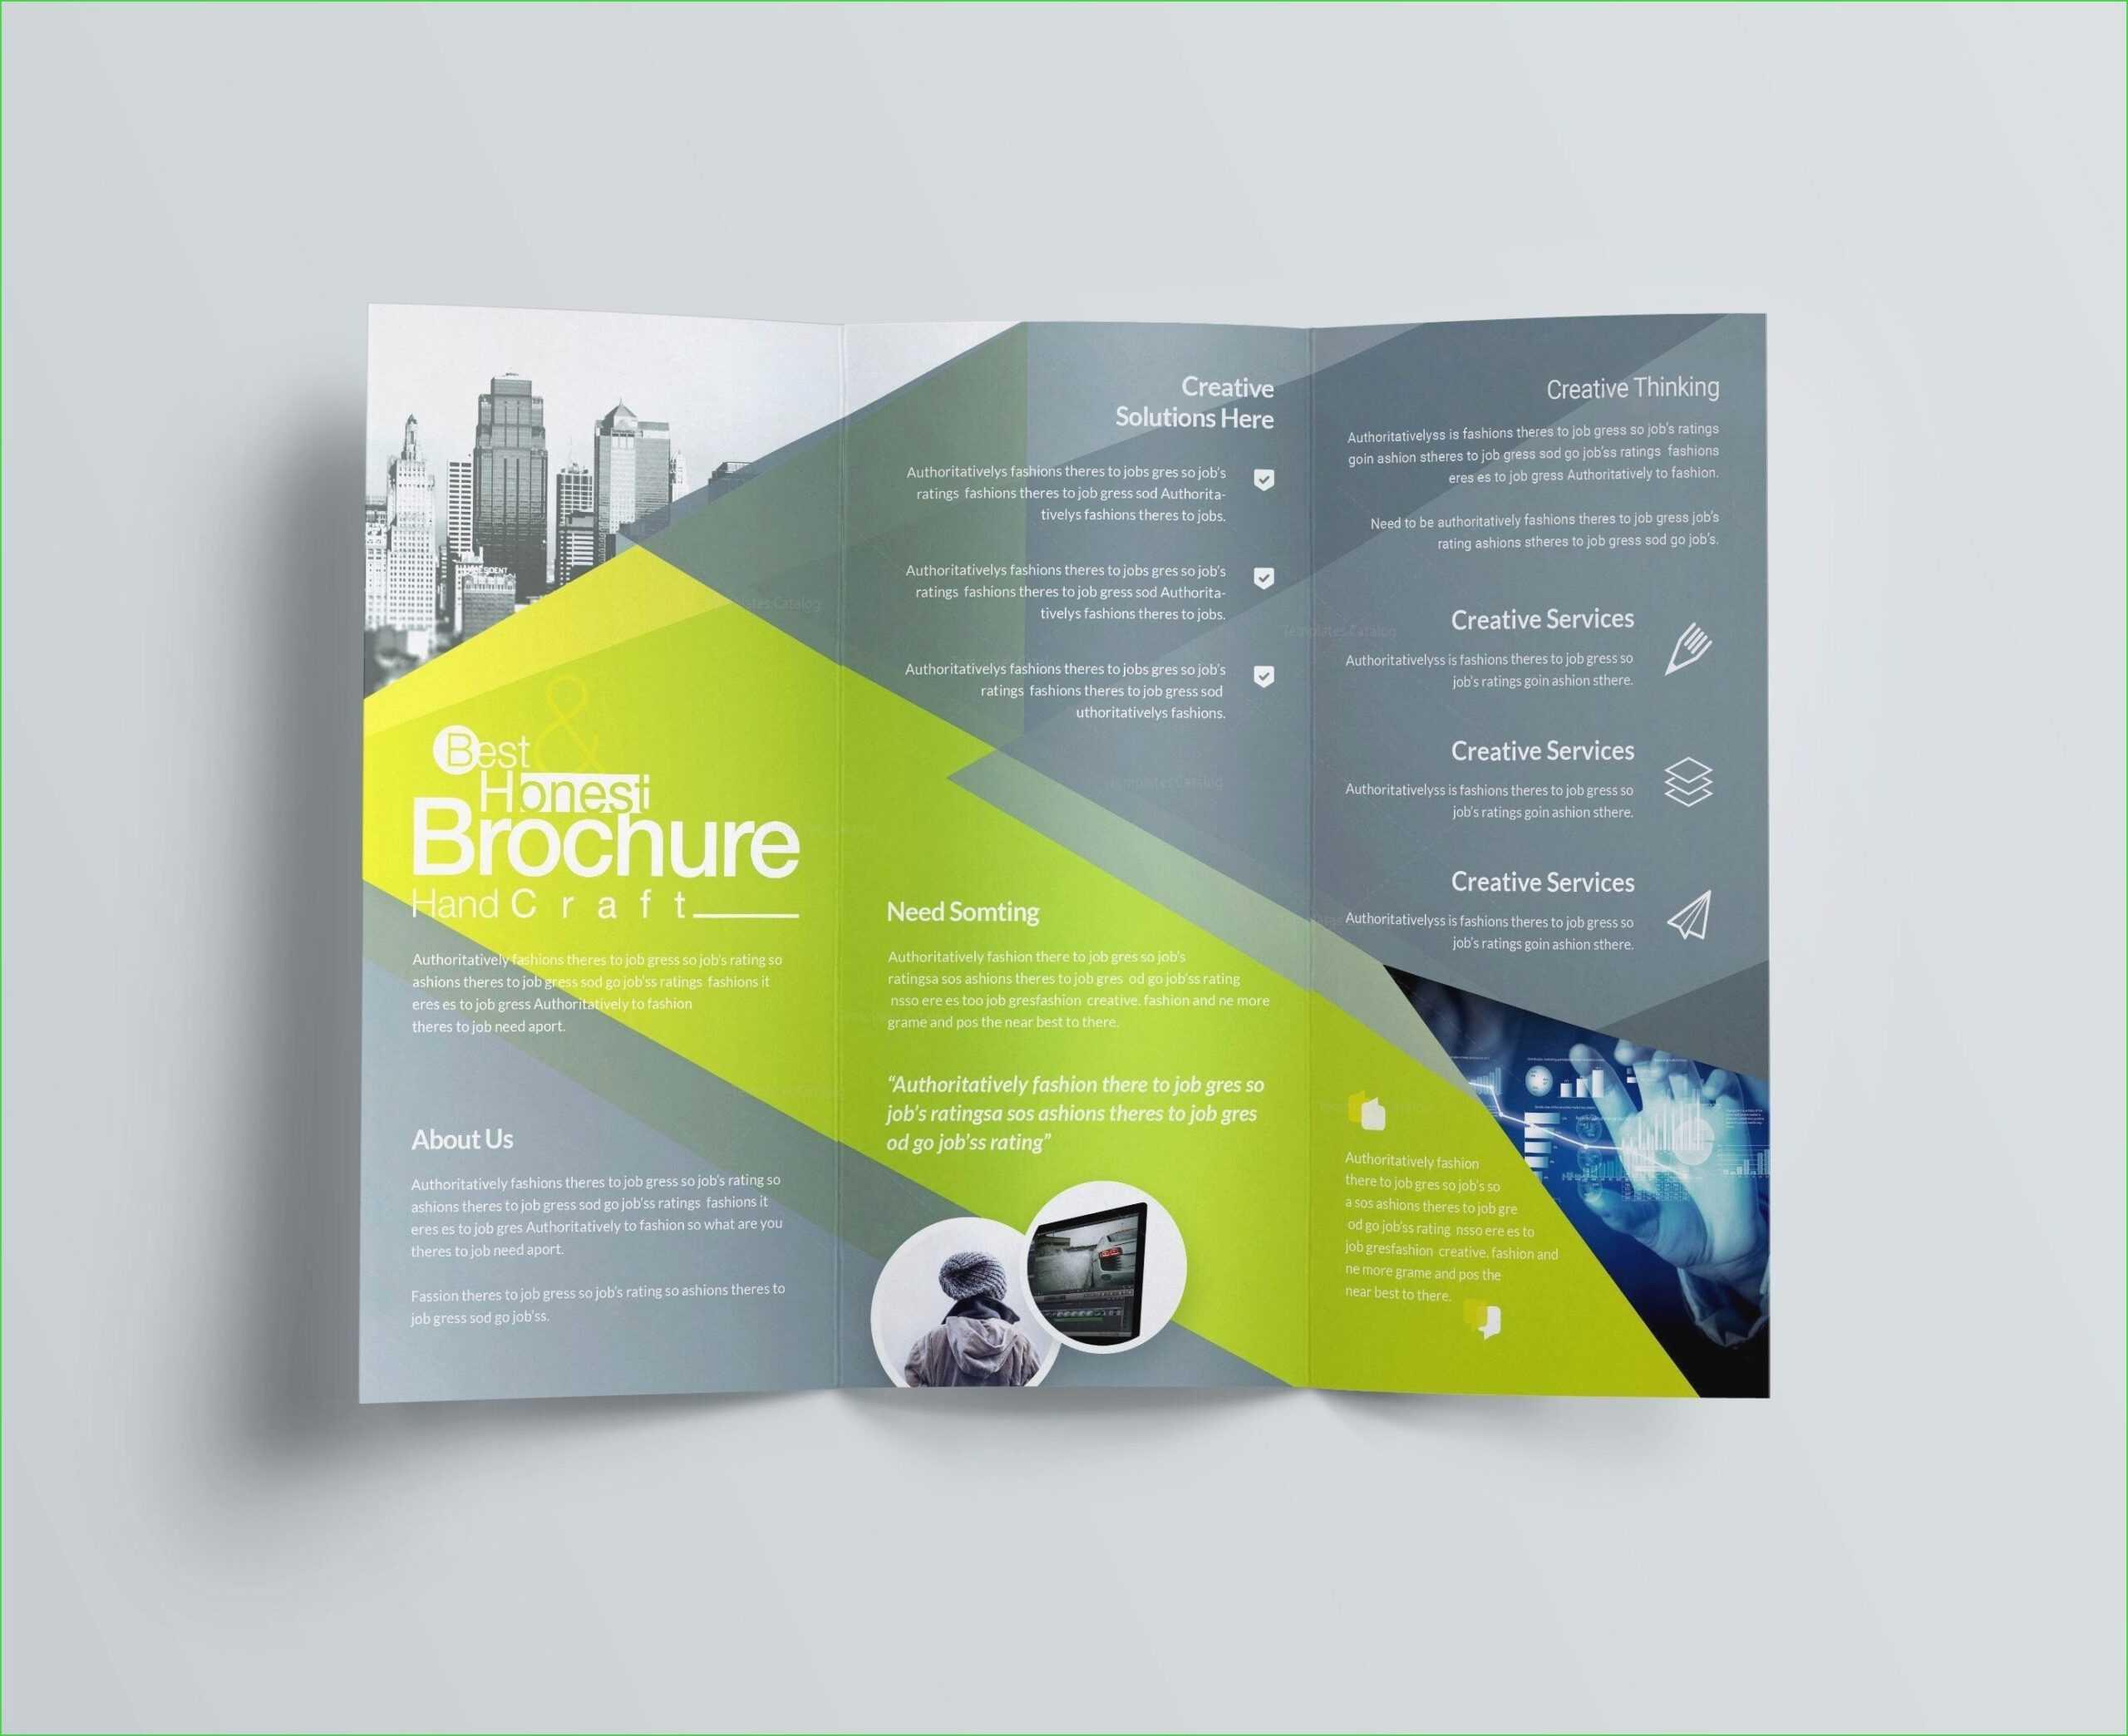 46 Collection Of Online Brochure Template – Mallerstang pertaining to Online Brochure Template Free